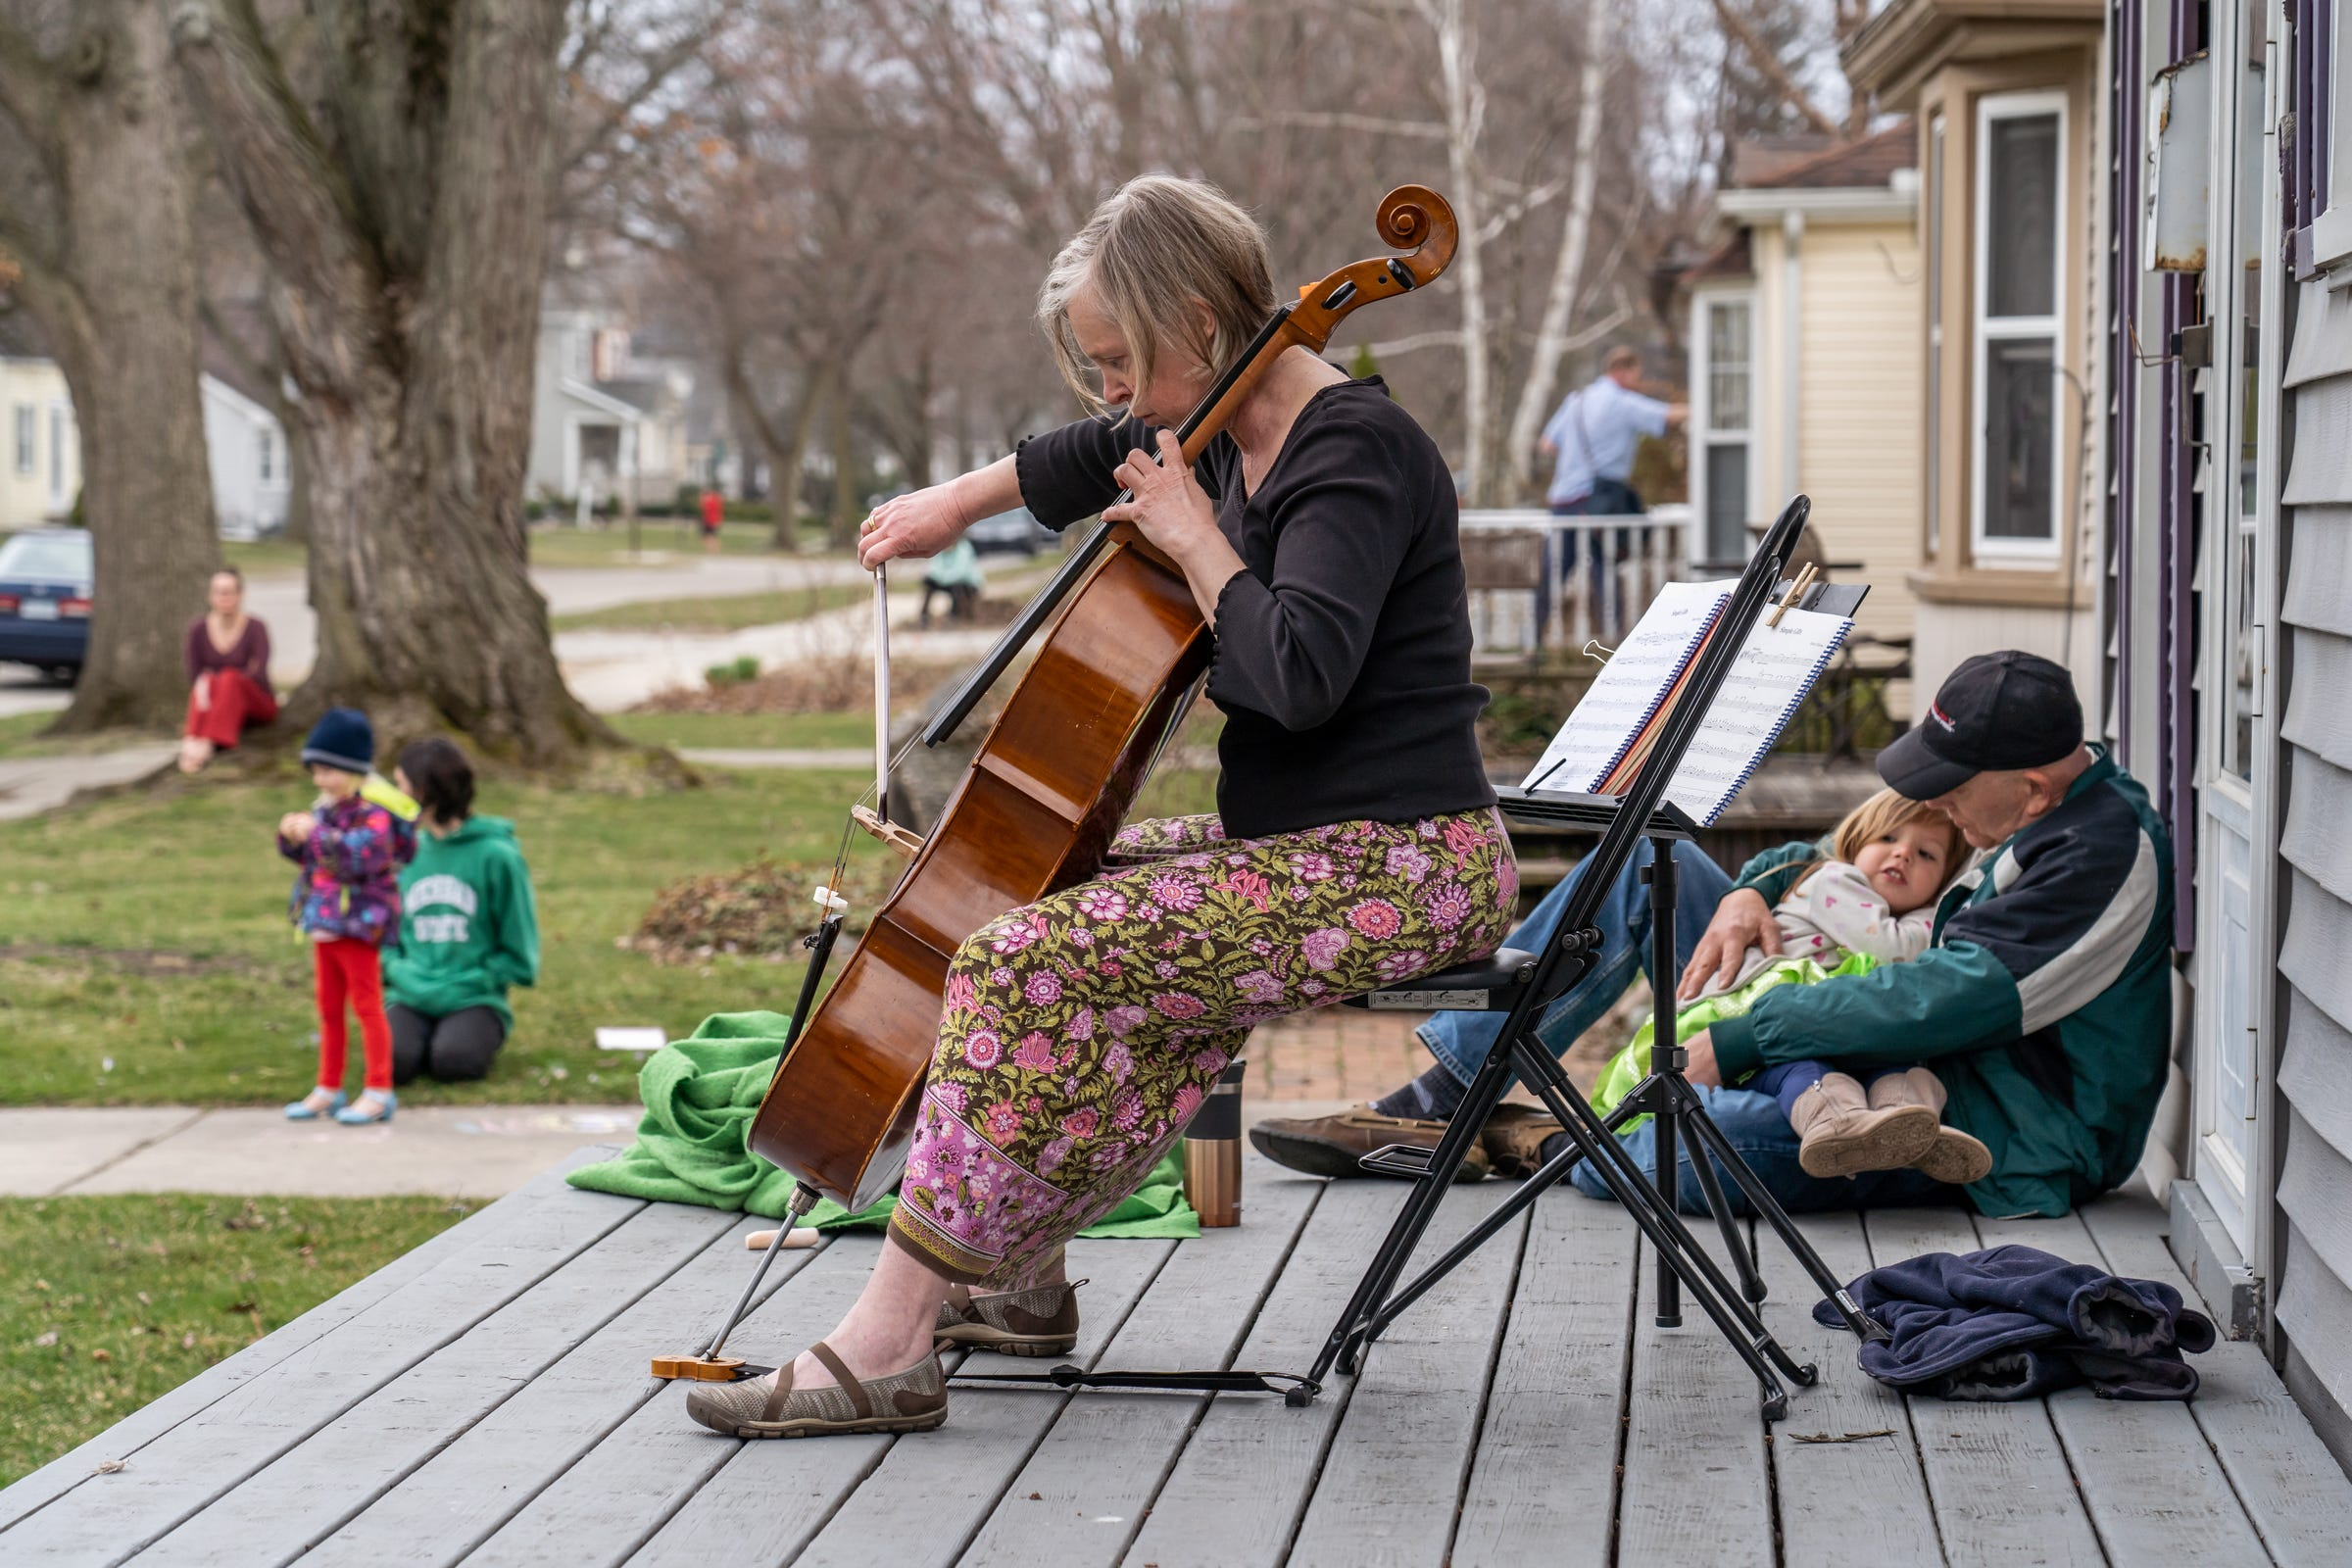 Irina Tikhonova plays the cello on her front porch in Royal Oak, Mich. for neighbors and people passing by as he husband Fred Trimble holds their 4-year-old granddaughter Mia on March 26, 2020. Before the coronavirus pandemic prompted concert cancellations, Tikhonova, who has been playing the cello for more than four decades, played the with local symphony orchestras. Now, she is giving 30-minute porch performances in her Royal Oak neighborhood weather permitting.